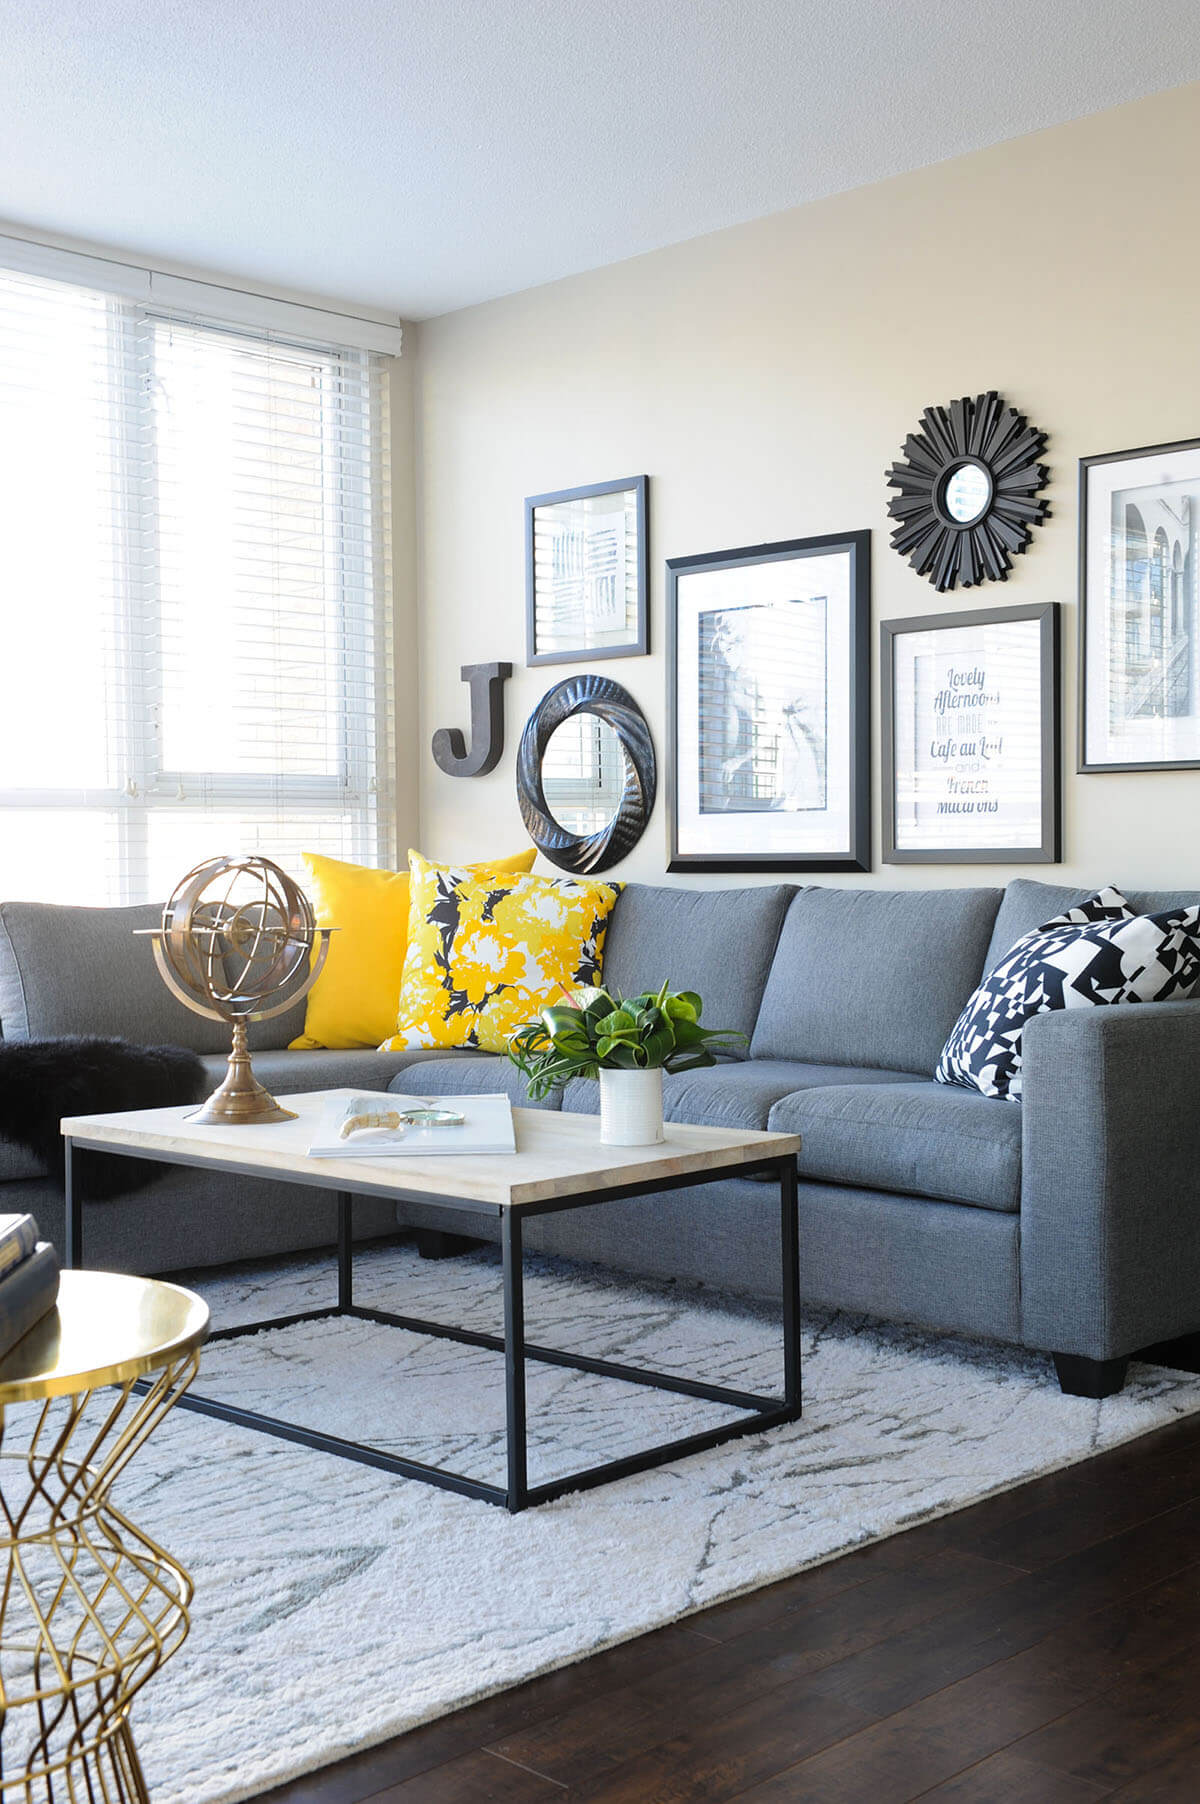 Drawing Room Design: 25+ Best Small Living Room Decor And Design Ideas For 2020